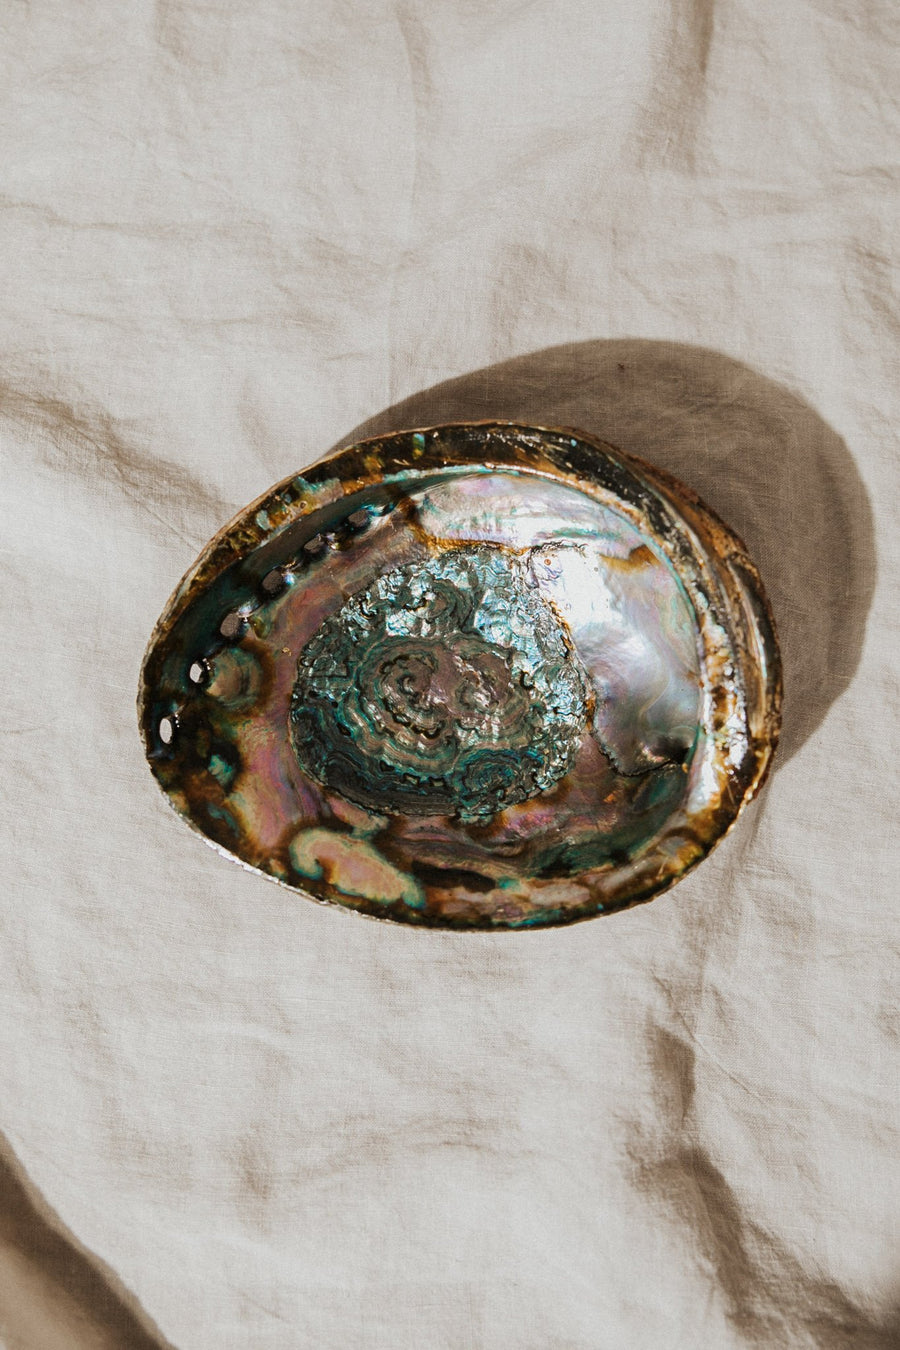 om imports Objects Abalone / Large / FINAL SALE Treasured Things Abalone Offering Bowl